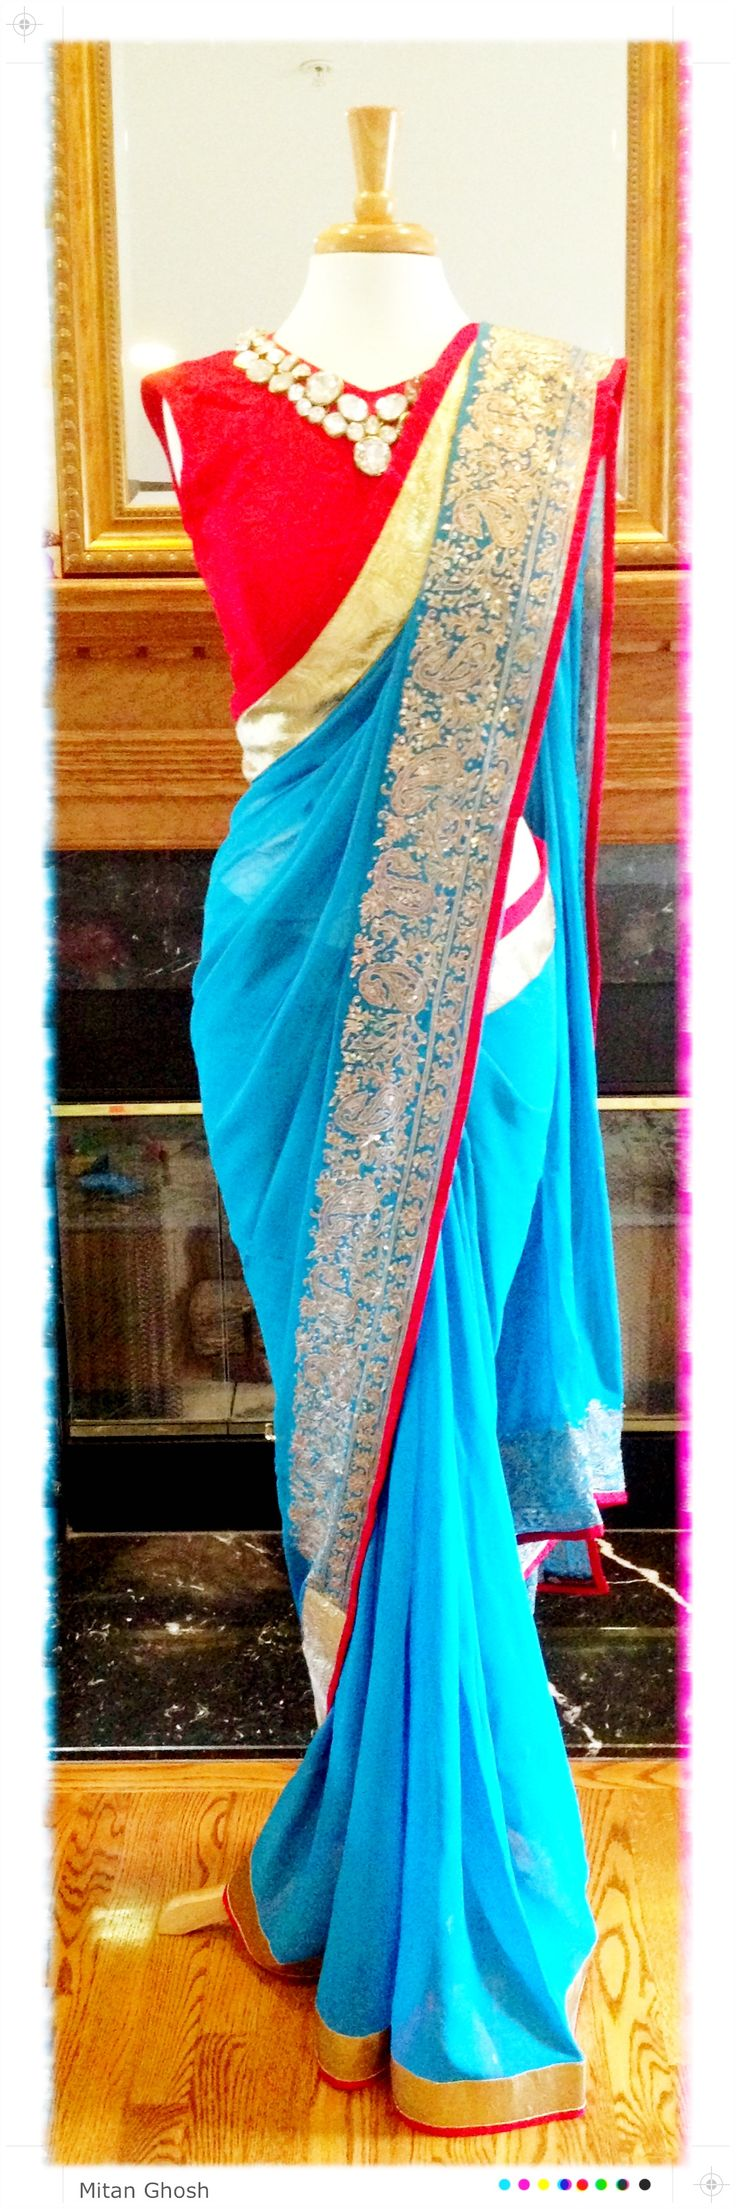 Georgette hand embroidered saree with crystal neckline blouse.